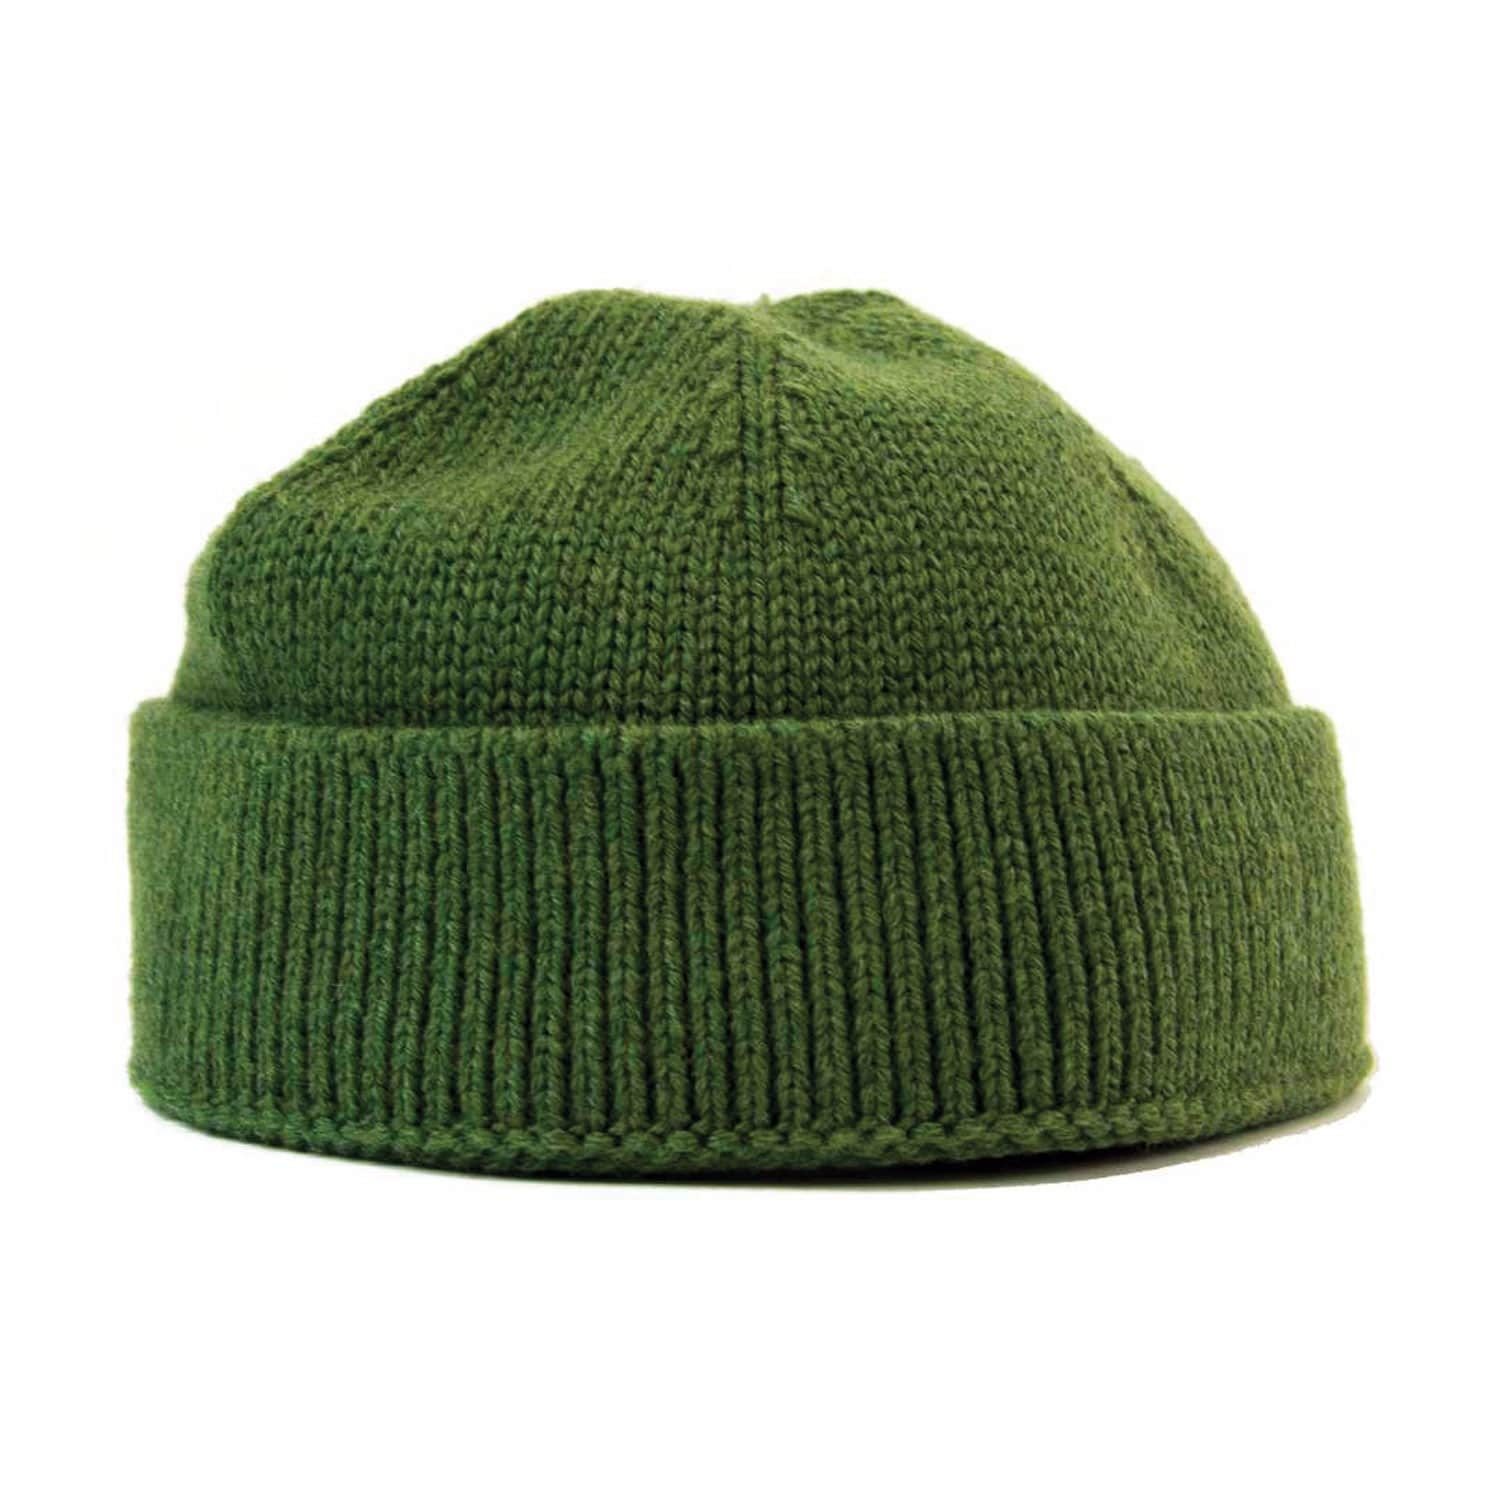 e500babdb23 Green Solid Wool Fisherman Beanie image